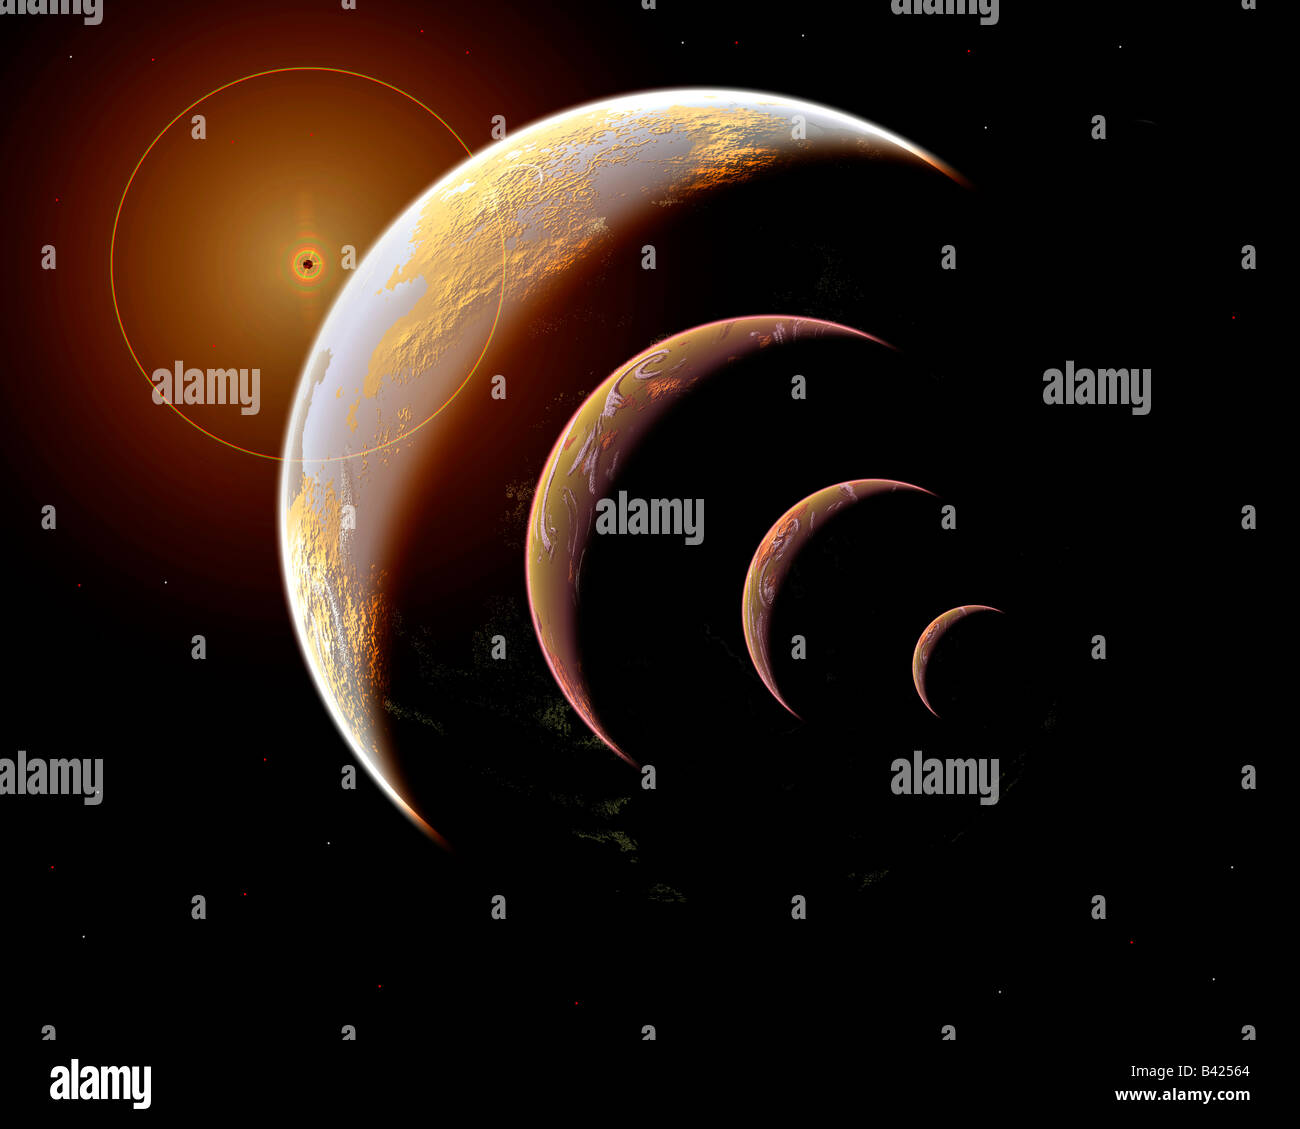 Family Of Planets - Stock Image